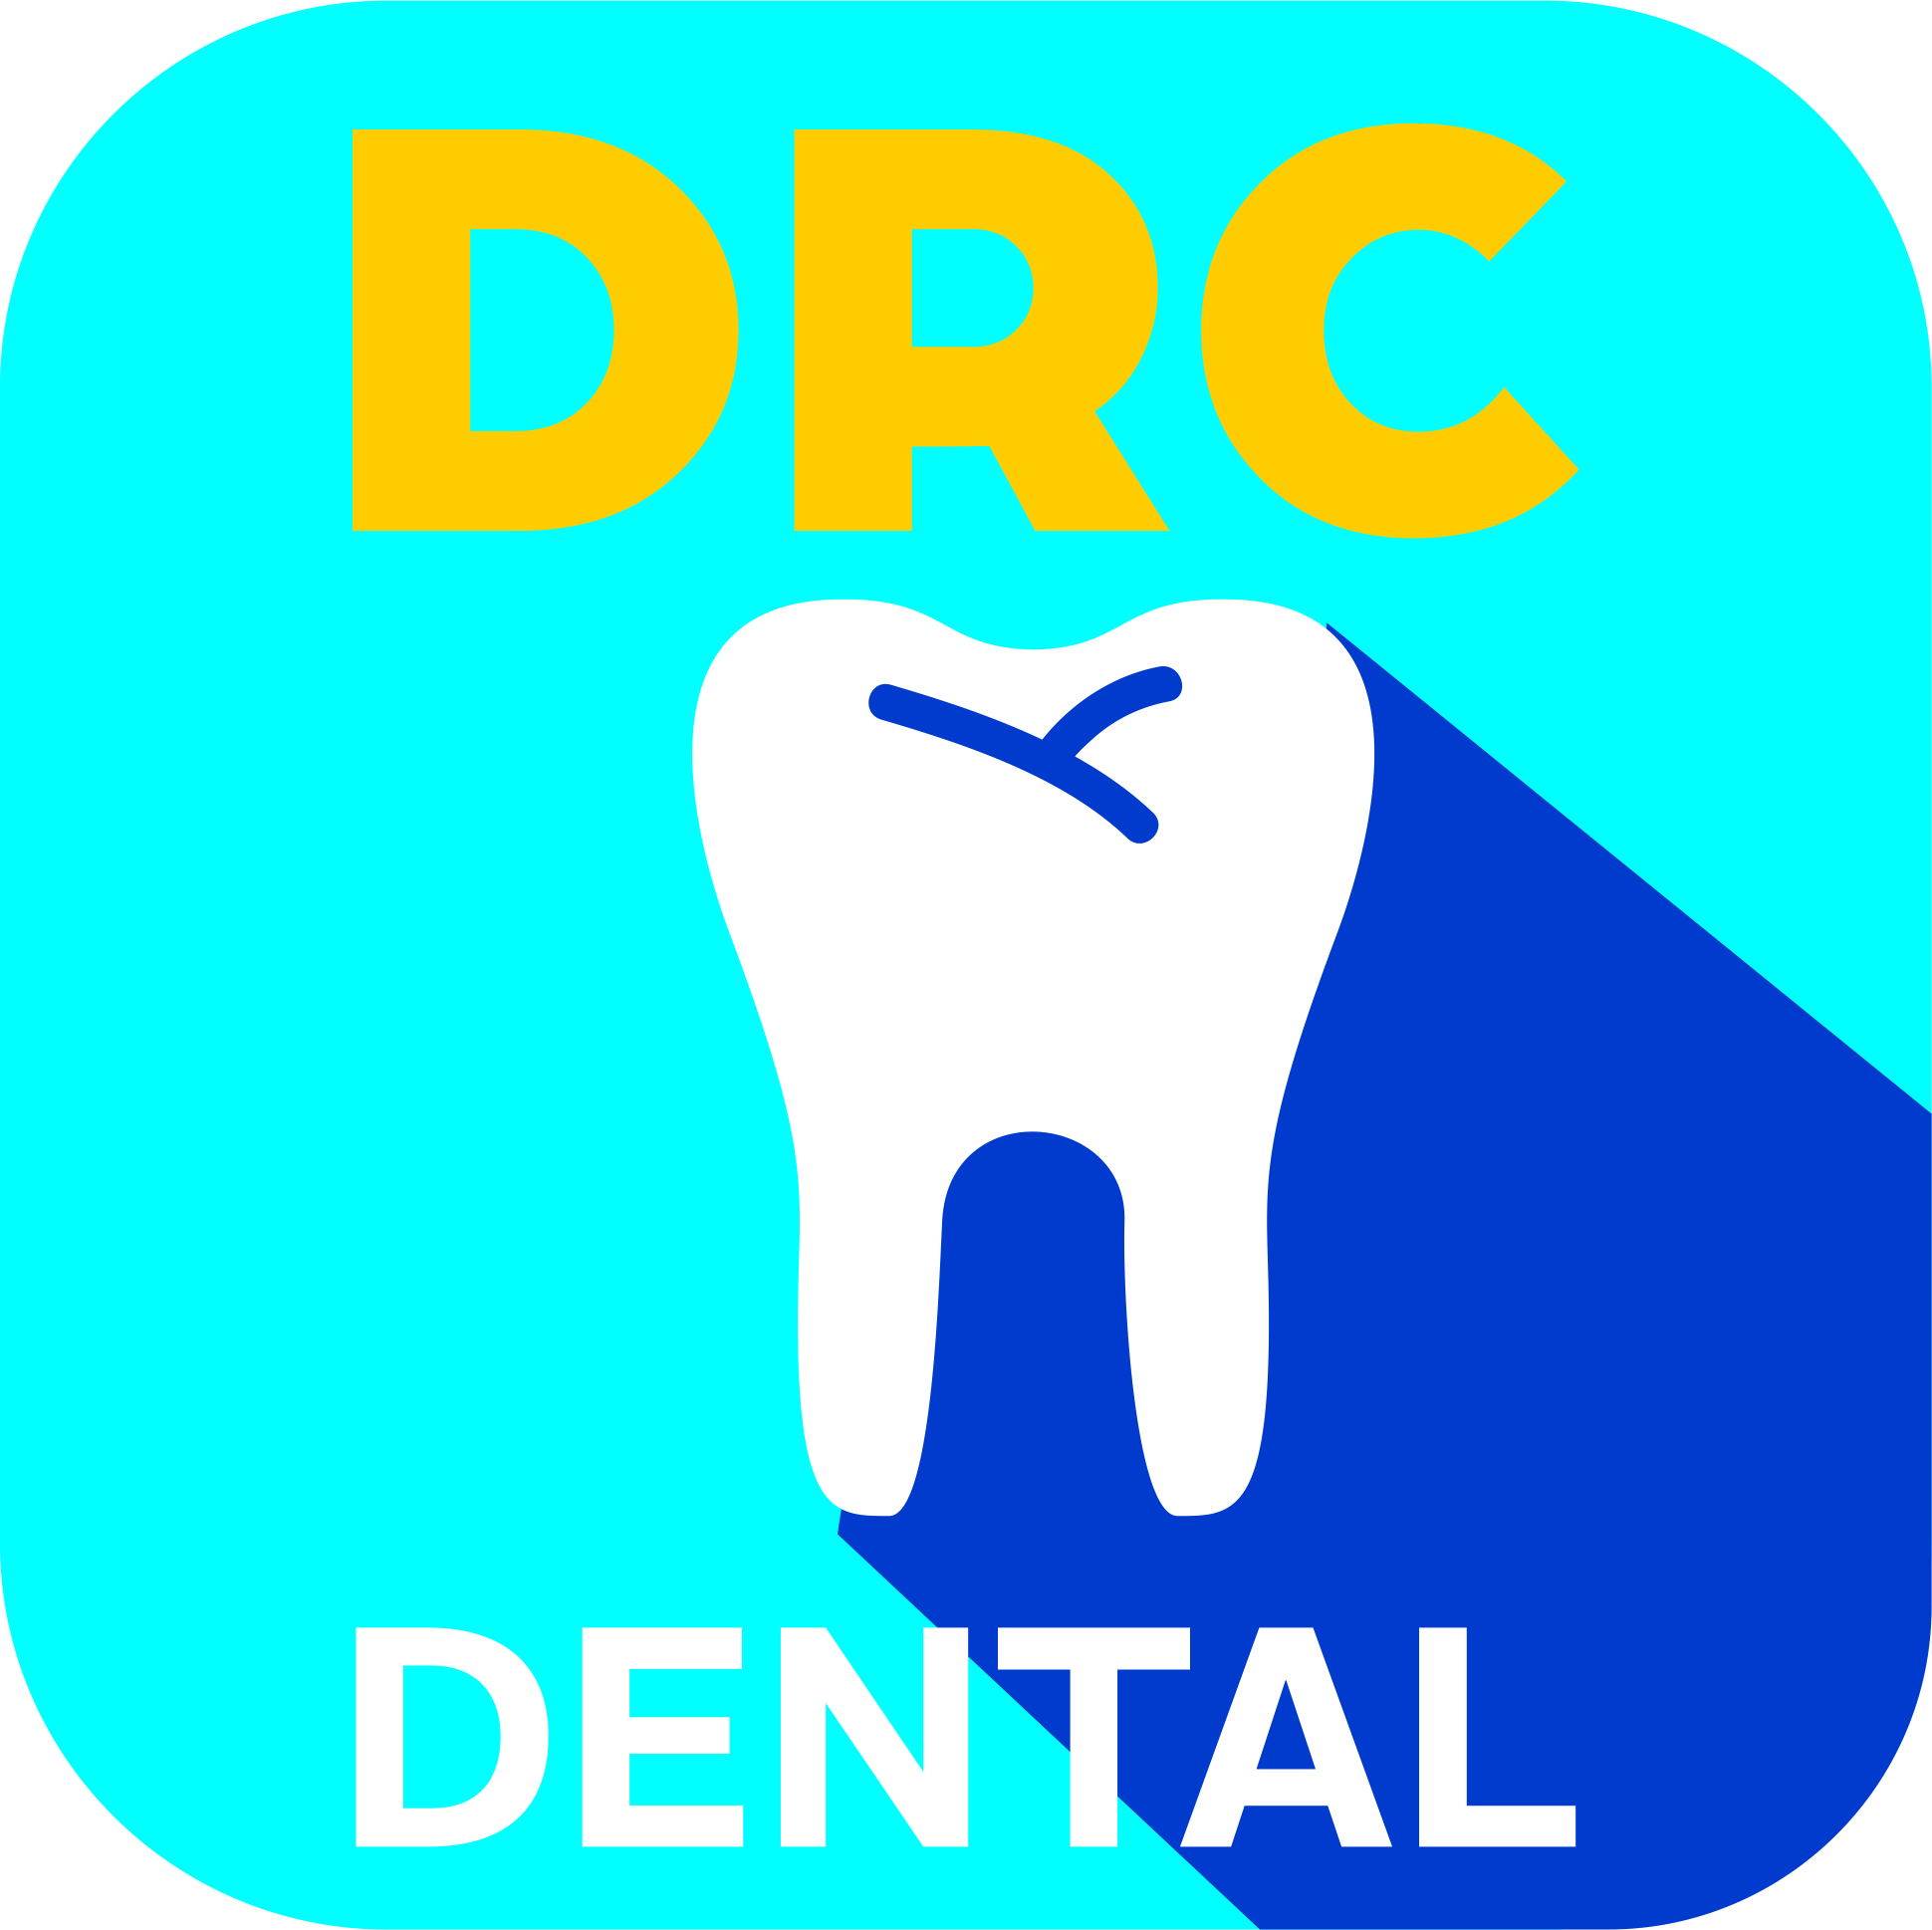 Dr. Roland Dental Shop Online